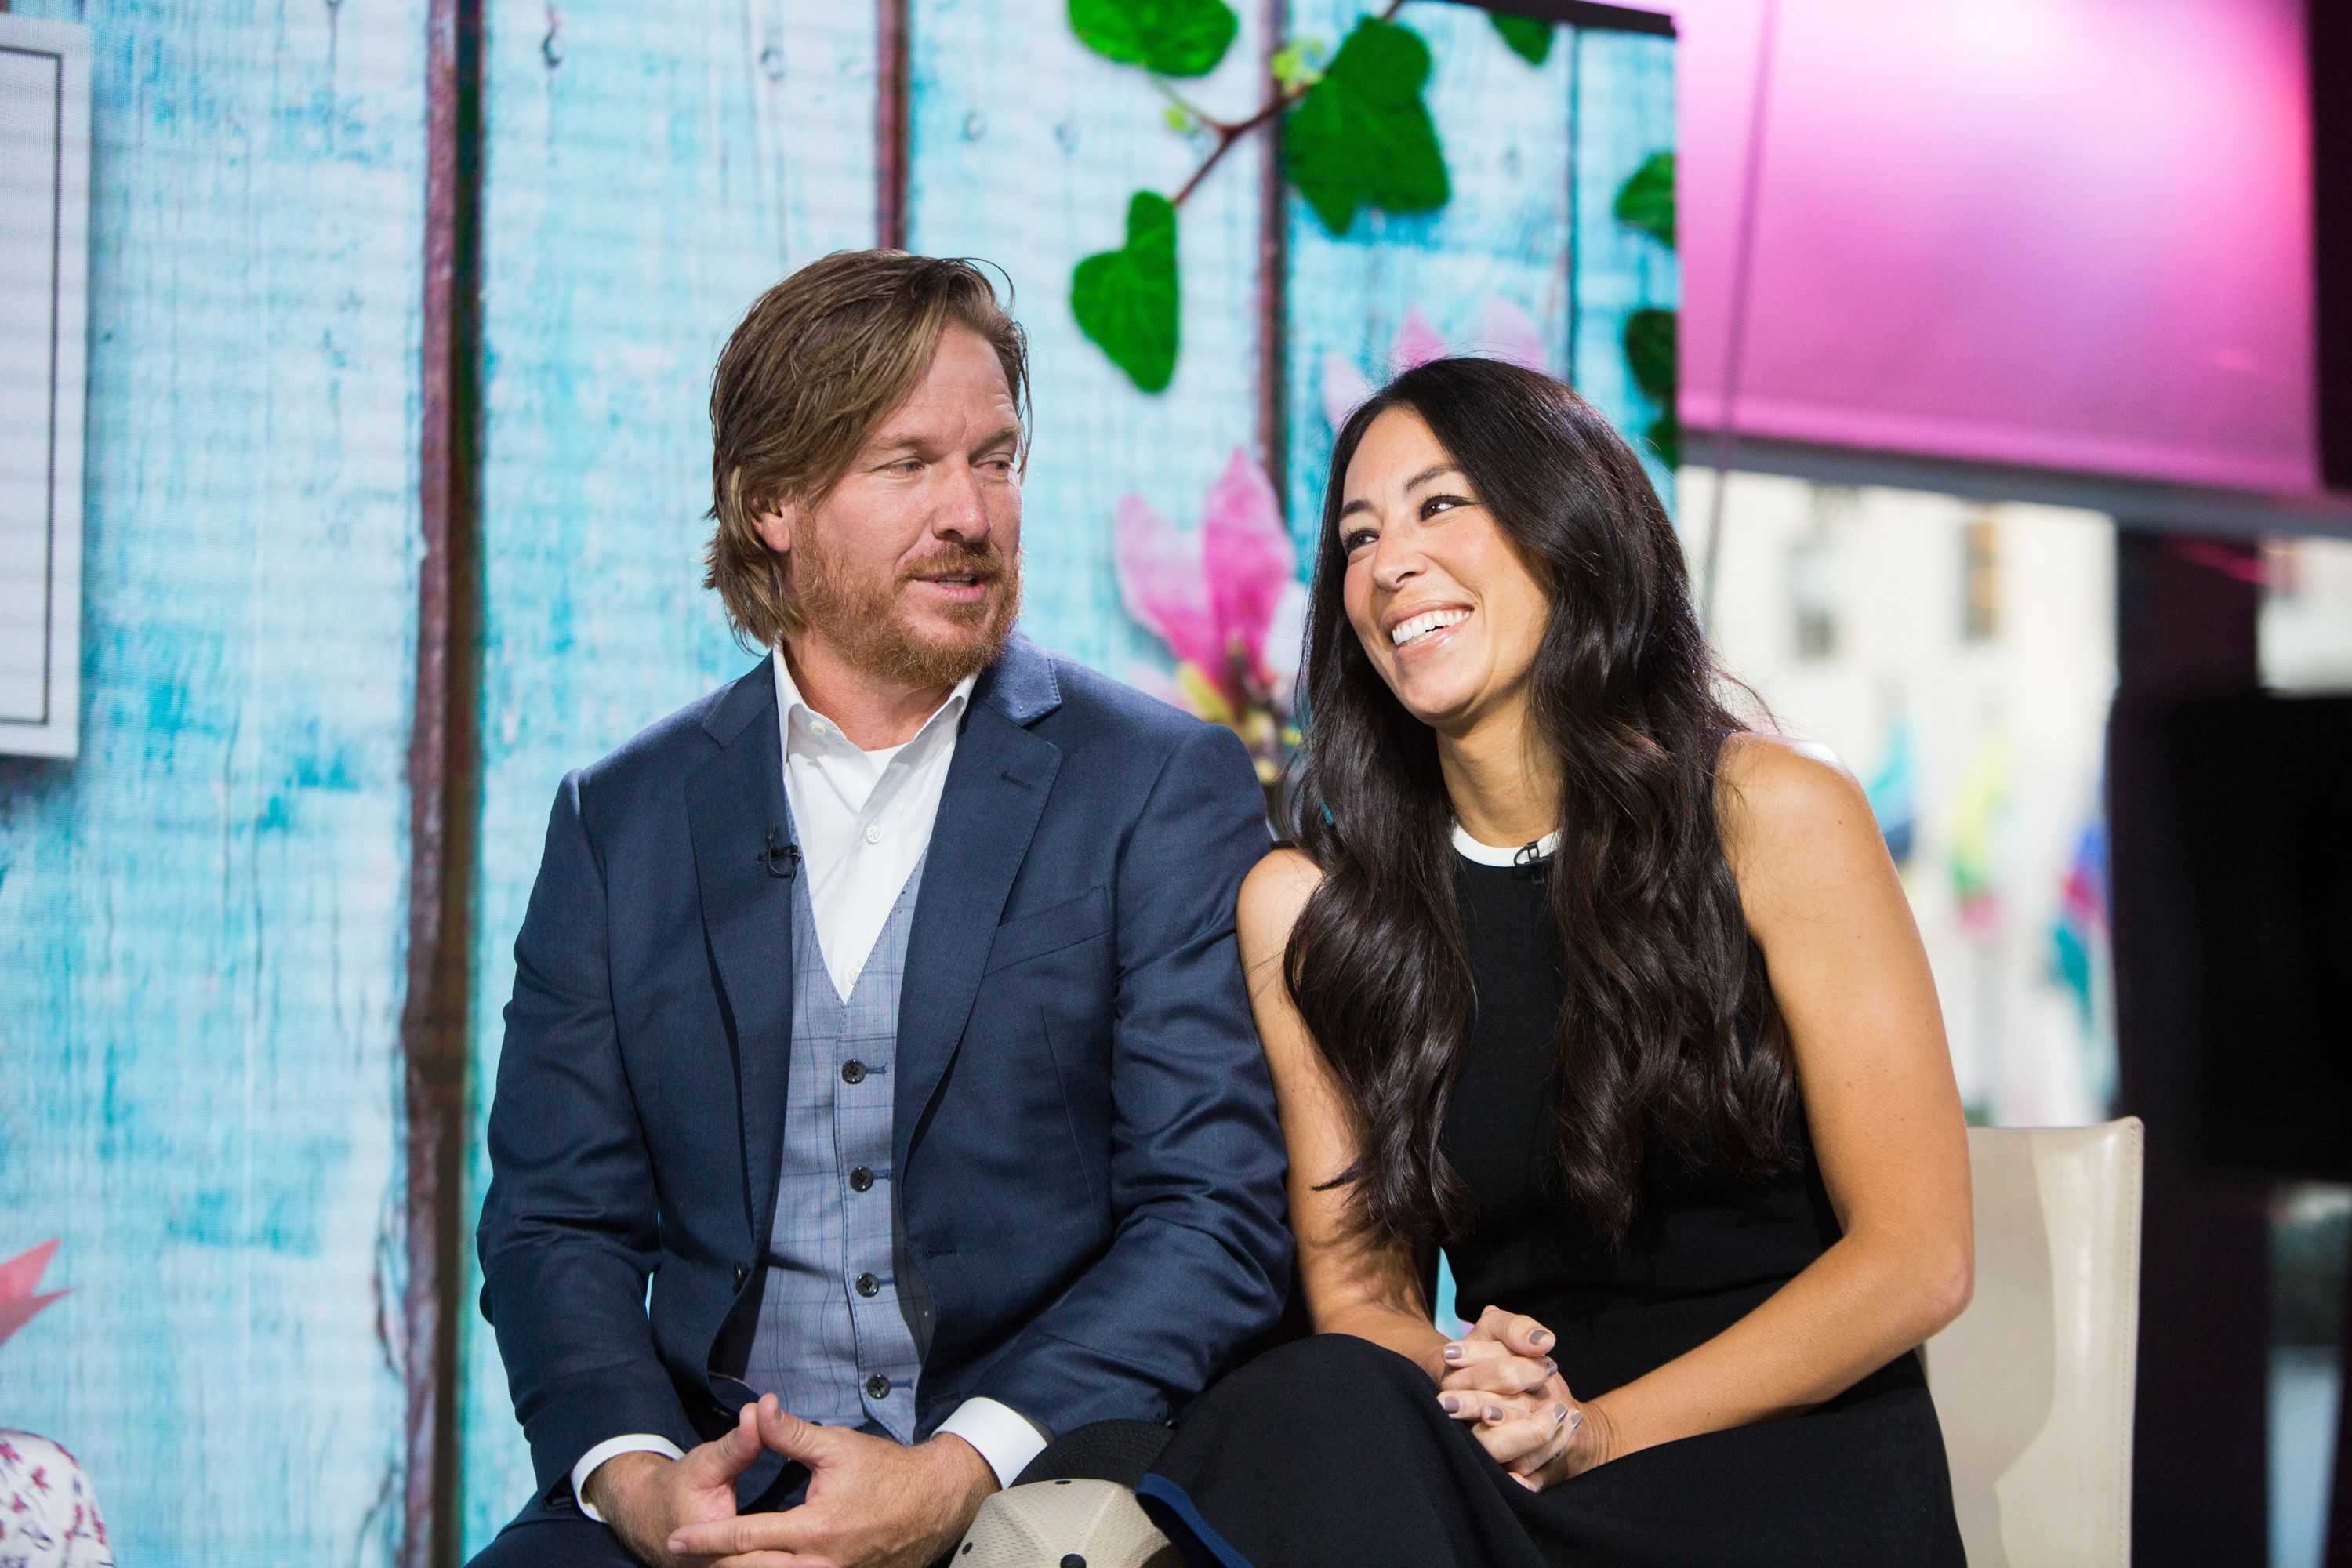 Are Chip and Joanna Gaines Secretly Filming for Their New TV Network? An Investigation